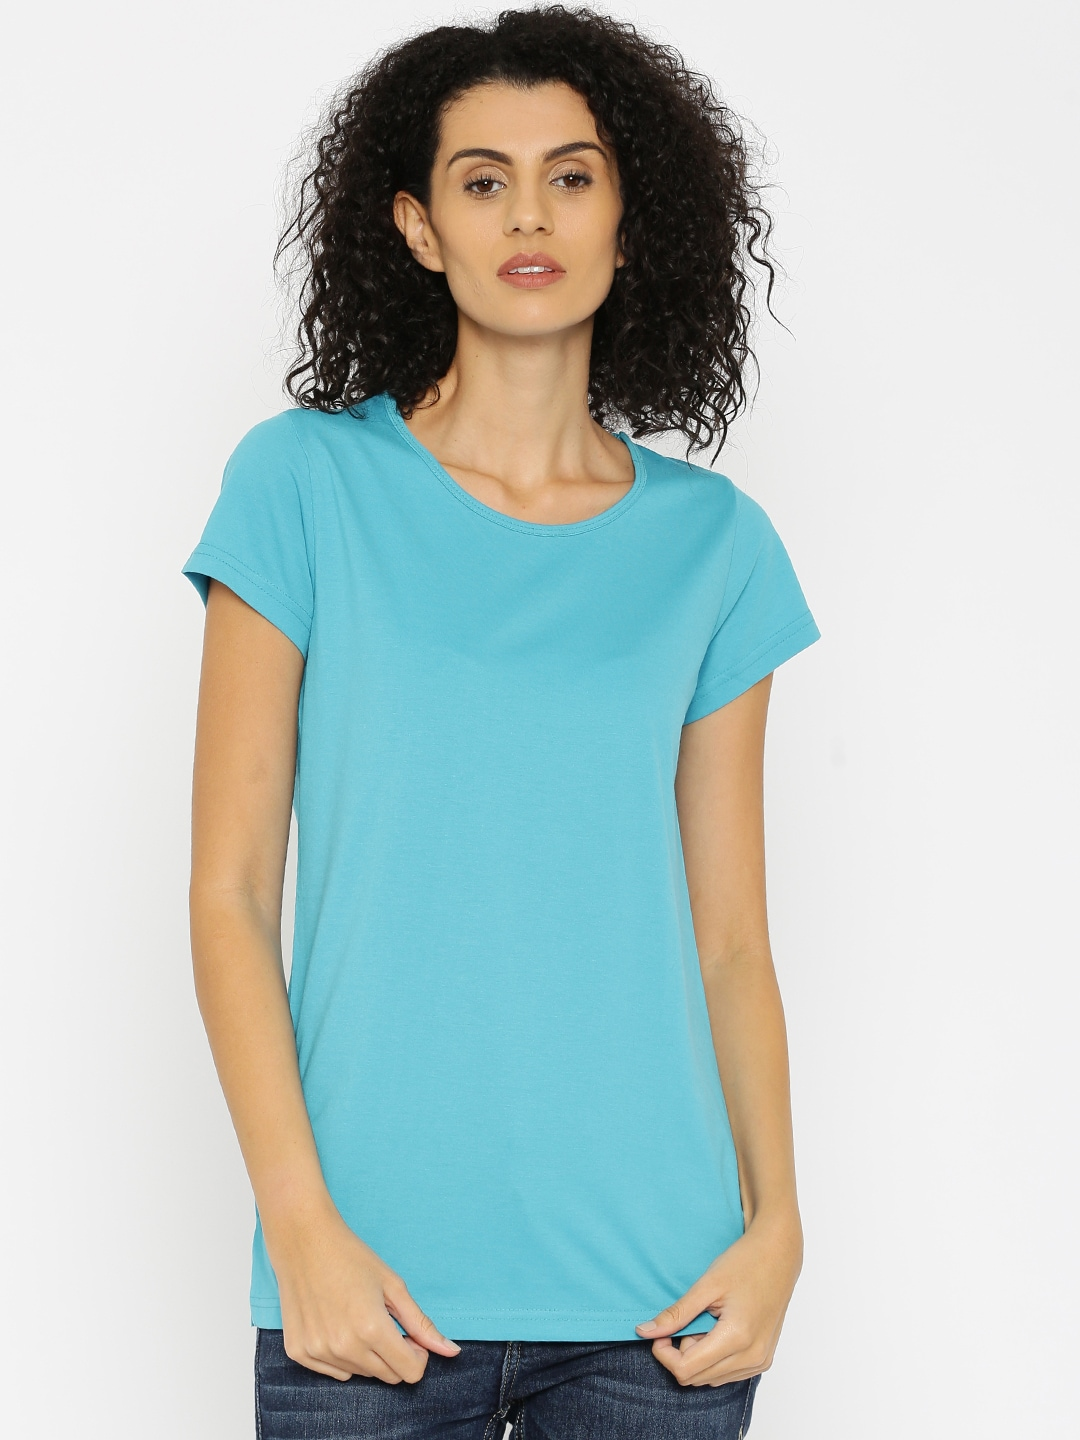 Kanvin Blue Lounge Top KAW16280D image